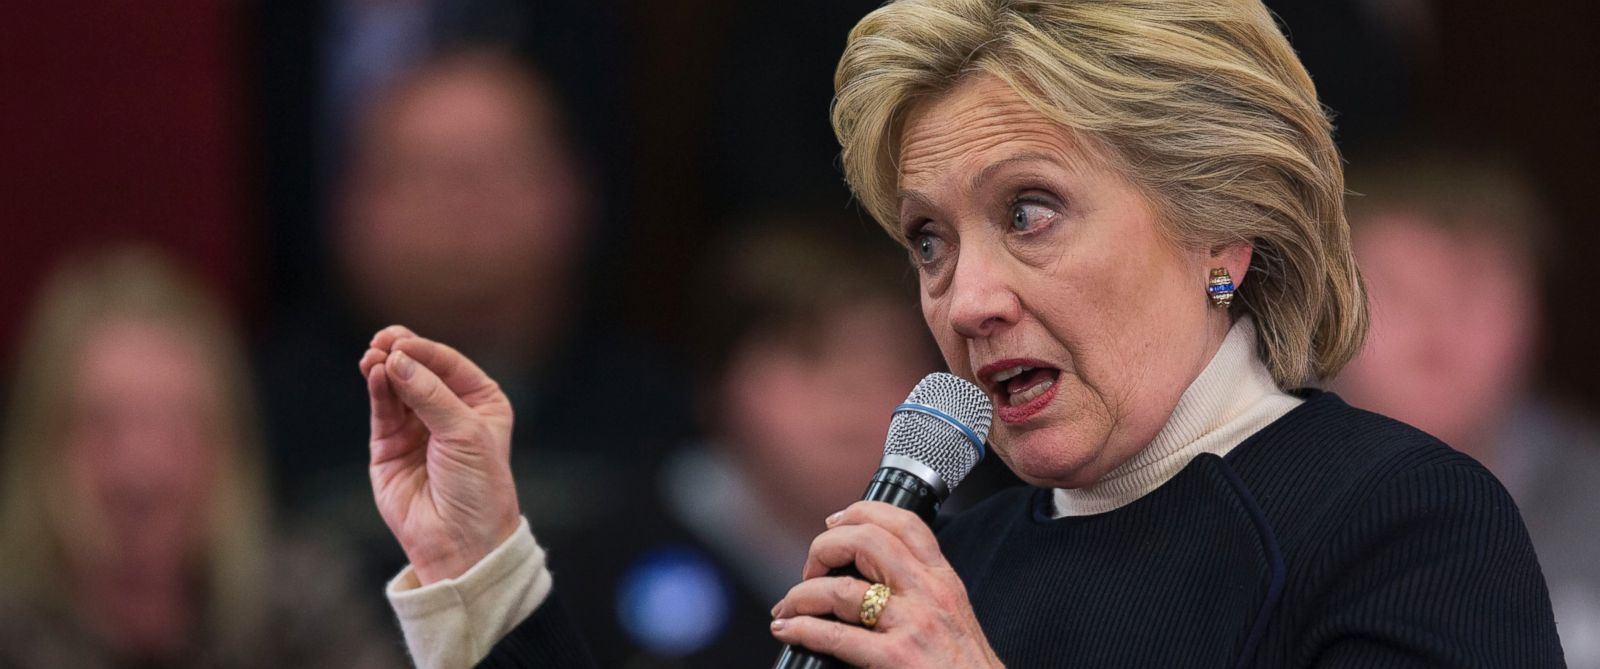 PHOTO: Democratic presidential candidate Hillary Clinton speaks at an organizing event in Toledo, Iowa, Jan. 18, 2016.